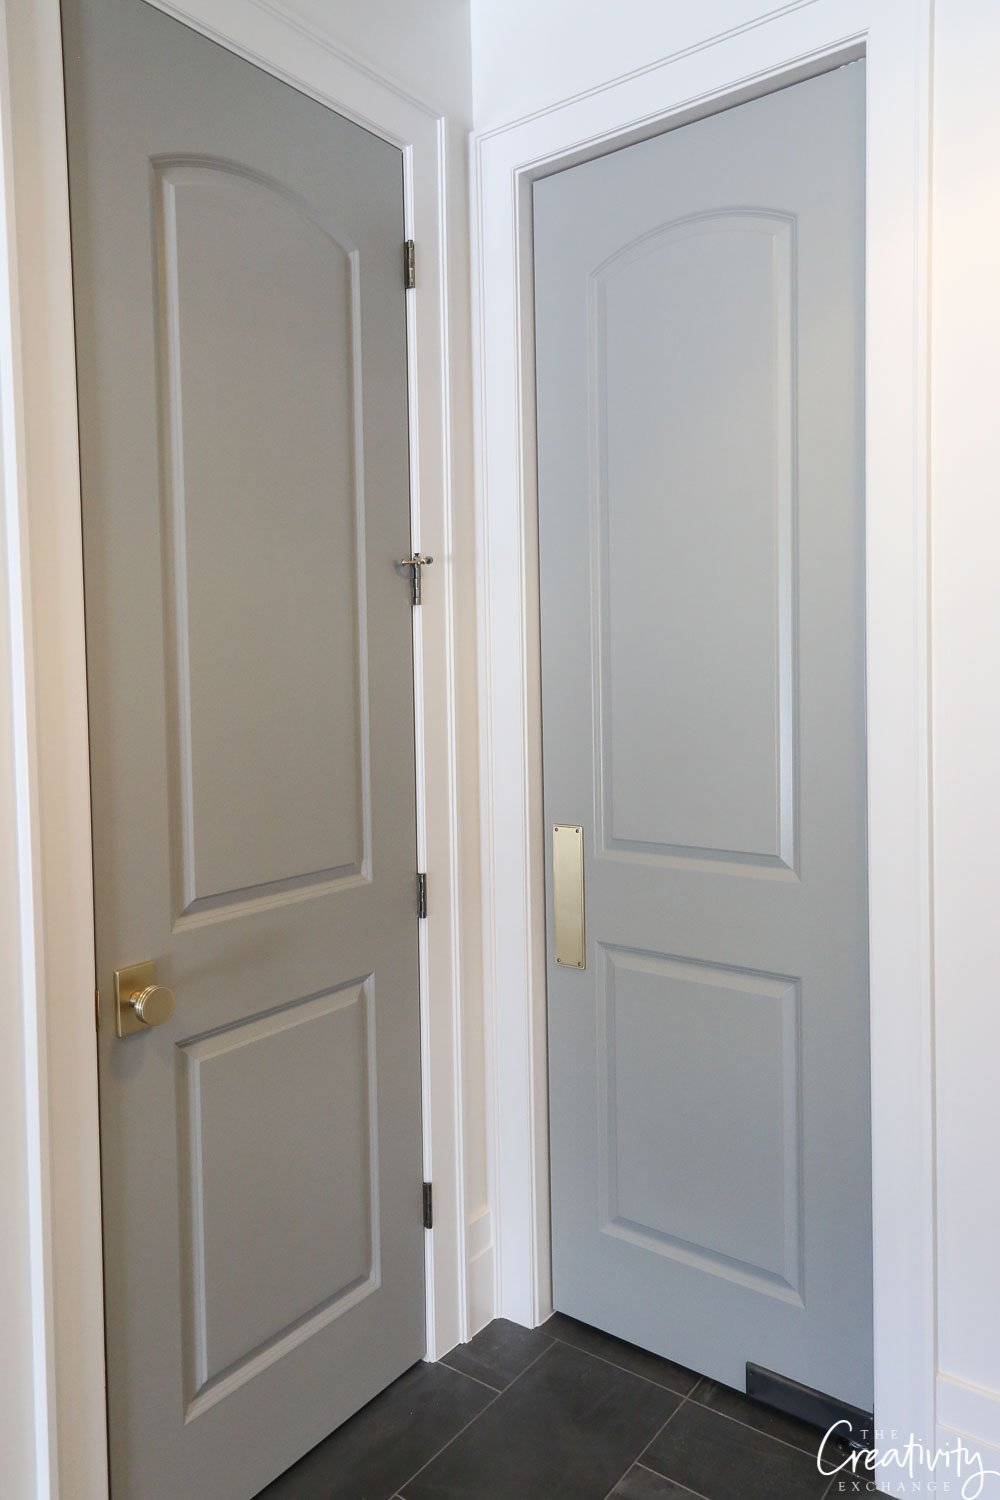 Door color is Farrow and Ball Lamp Room Gray